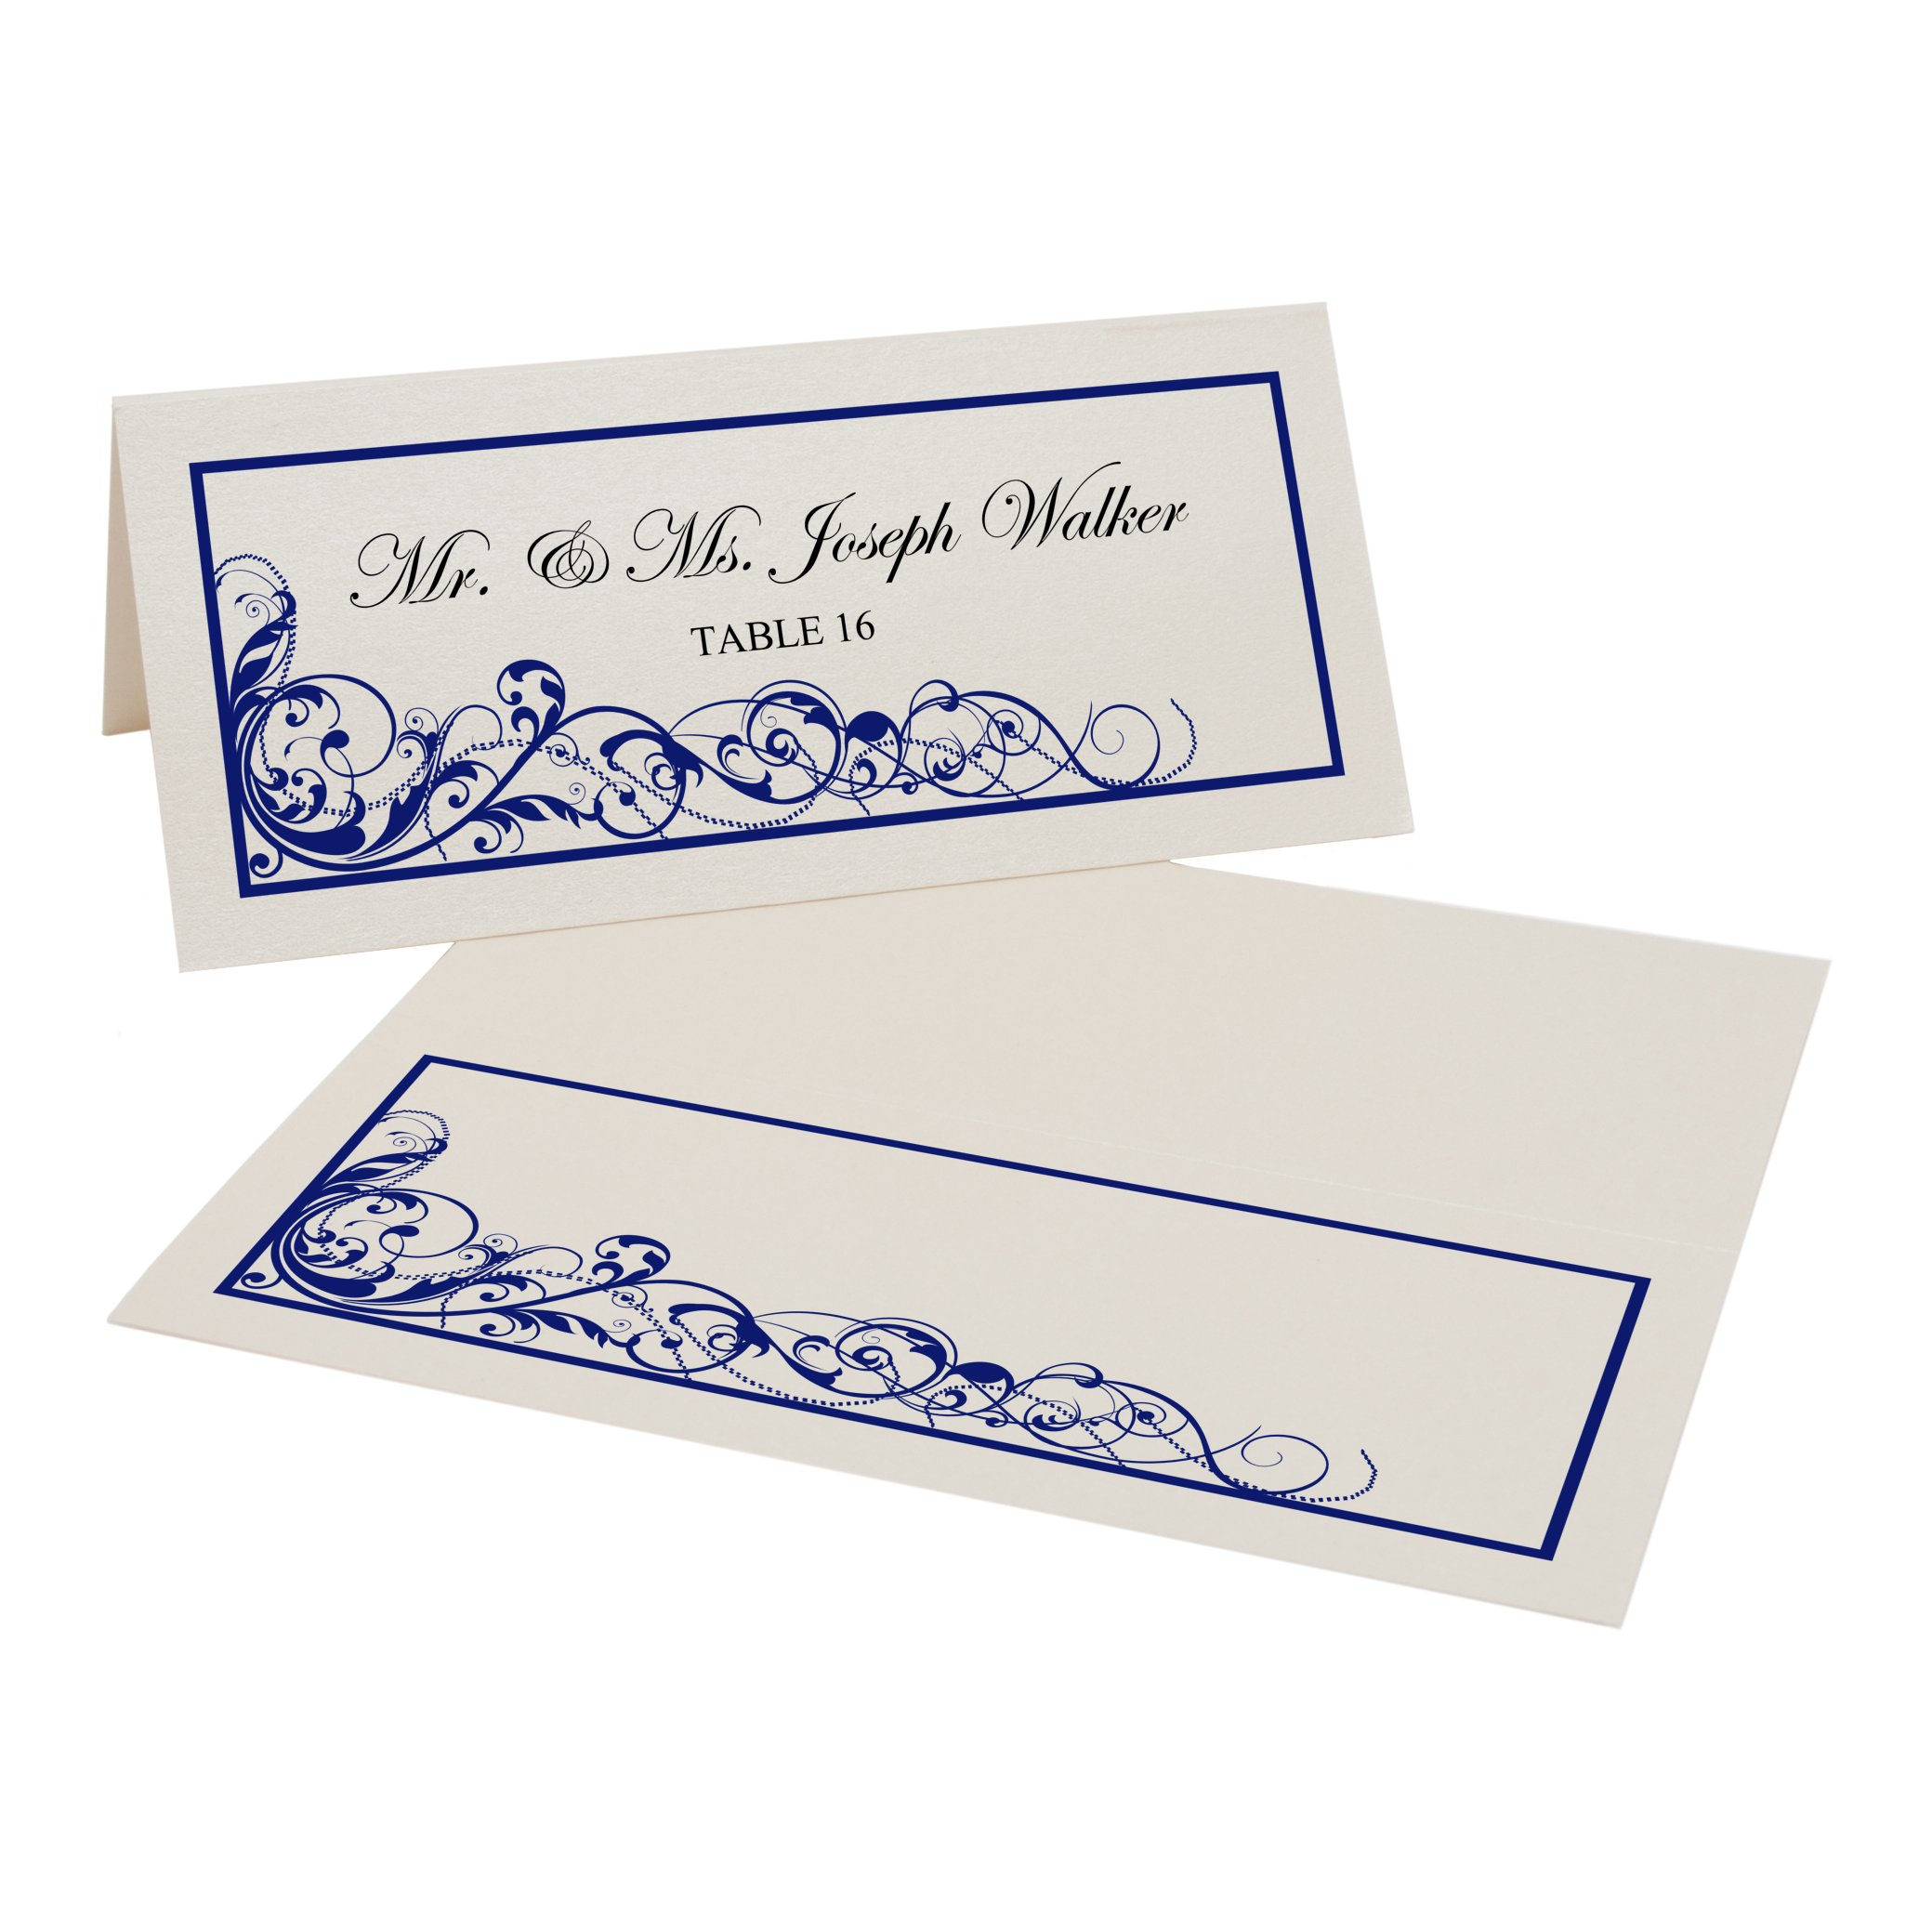 Scribble Vintage Swirl Easy Print Place Cards, Champagne, Navy, Set of 475 (119 Sheets) by Documents and Designs